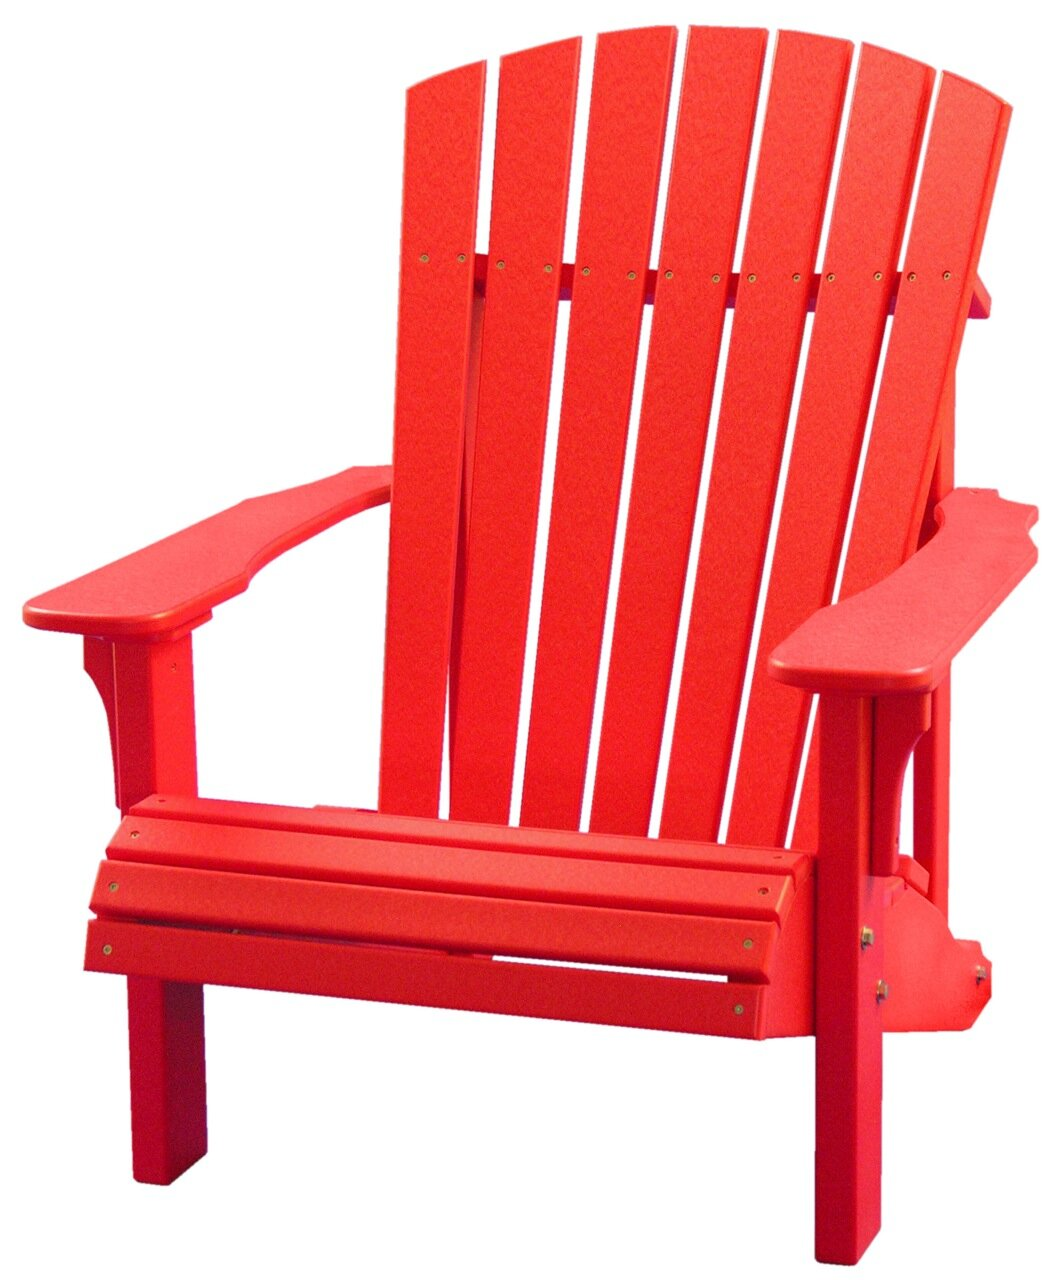 home depot chairs plastic skeleton chair wake me up patio adirondack for simple